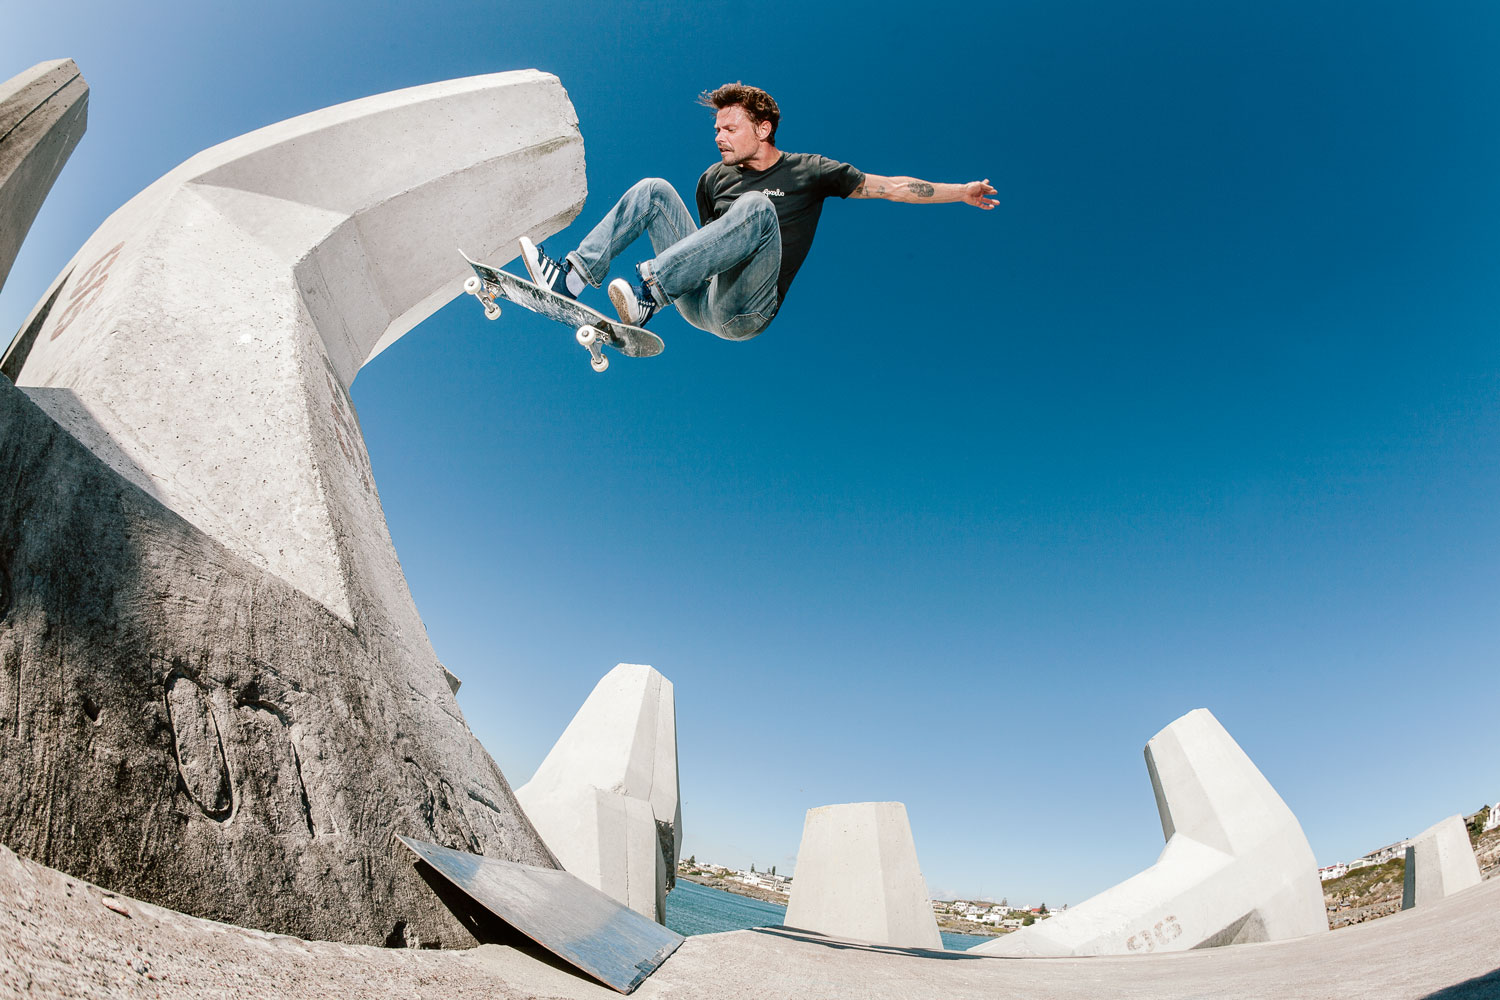 Web_Shaun-Witherup_Kickflip_Photo-Sam-Clark